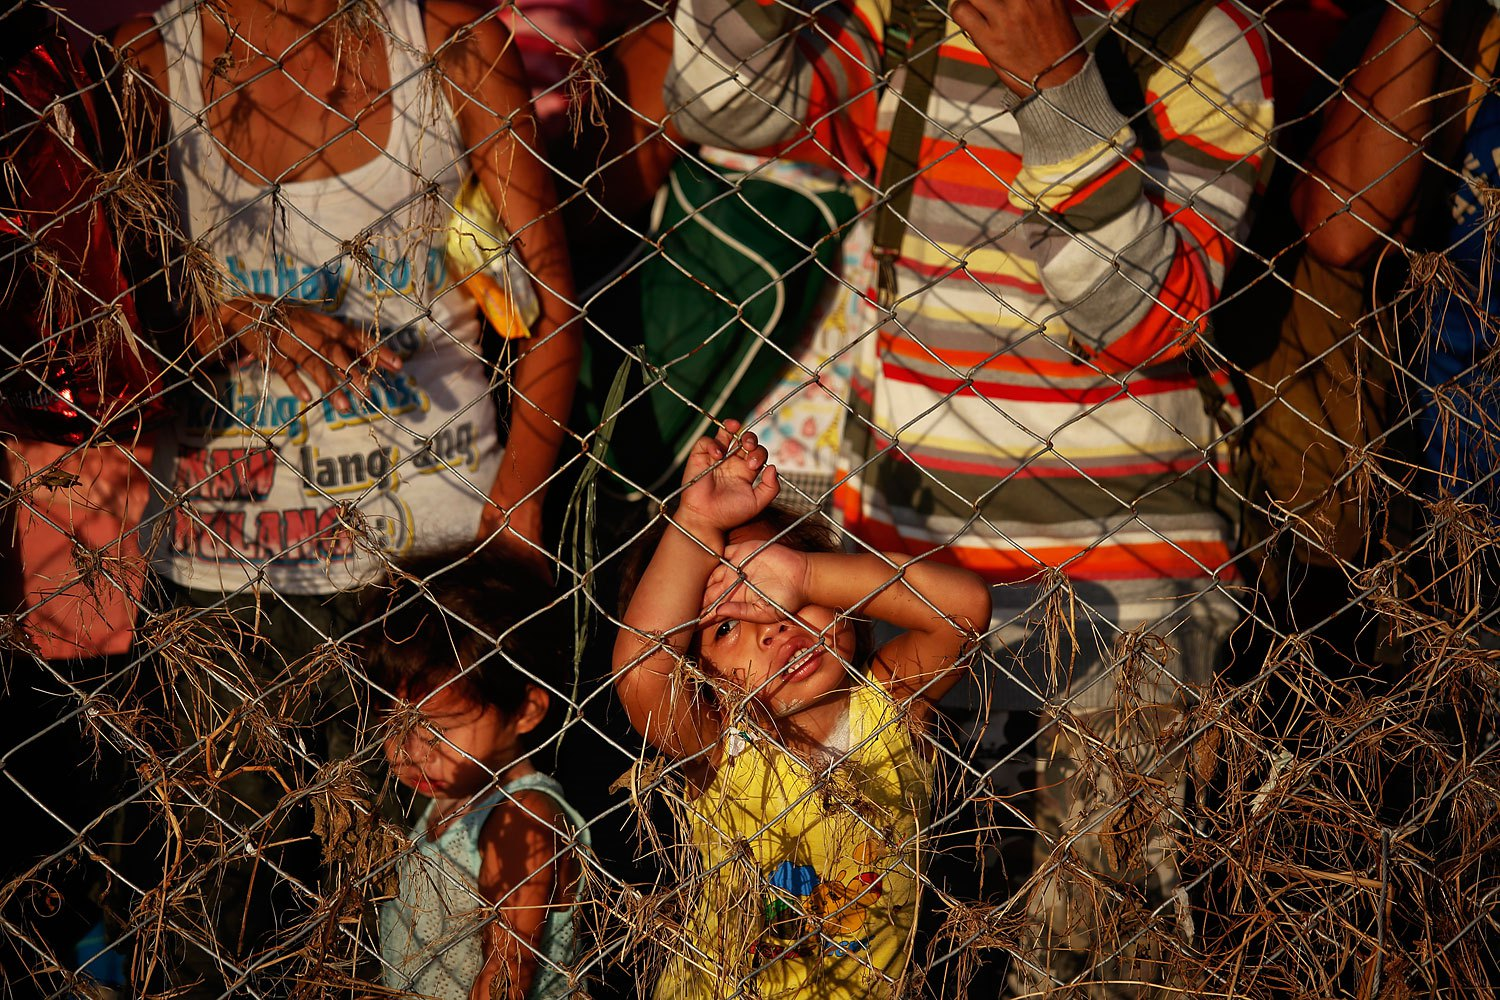 People who trying to leave the devastated town look through the fence of Tacloban airport, which remains a point of exodus for survivors of typhoon Haiyan, November 17, 2013.